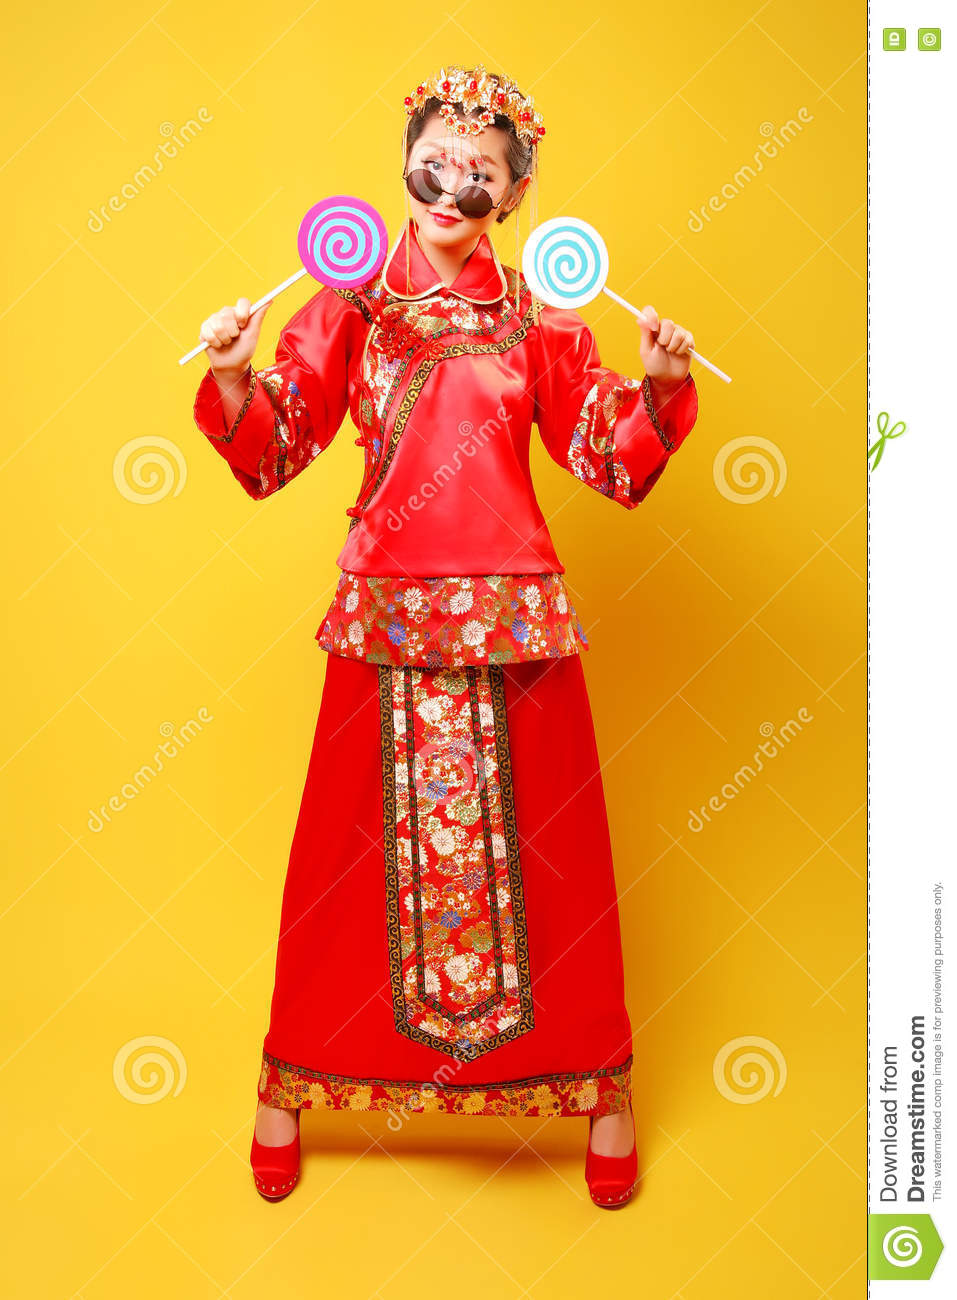 Fashion Chinese style —— human figures photography